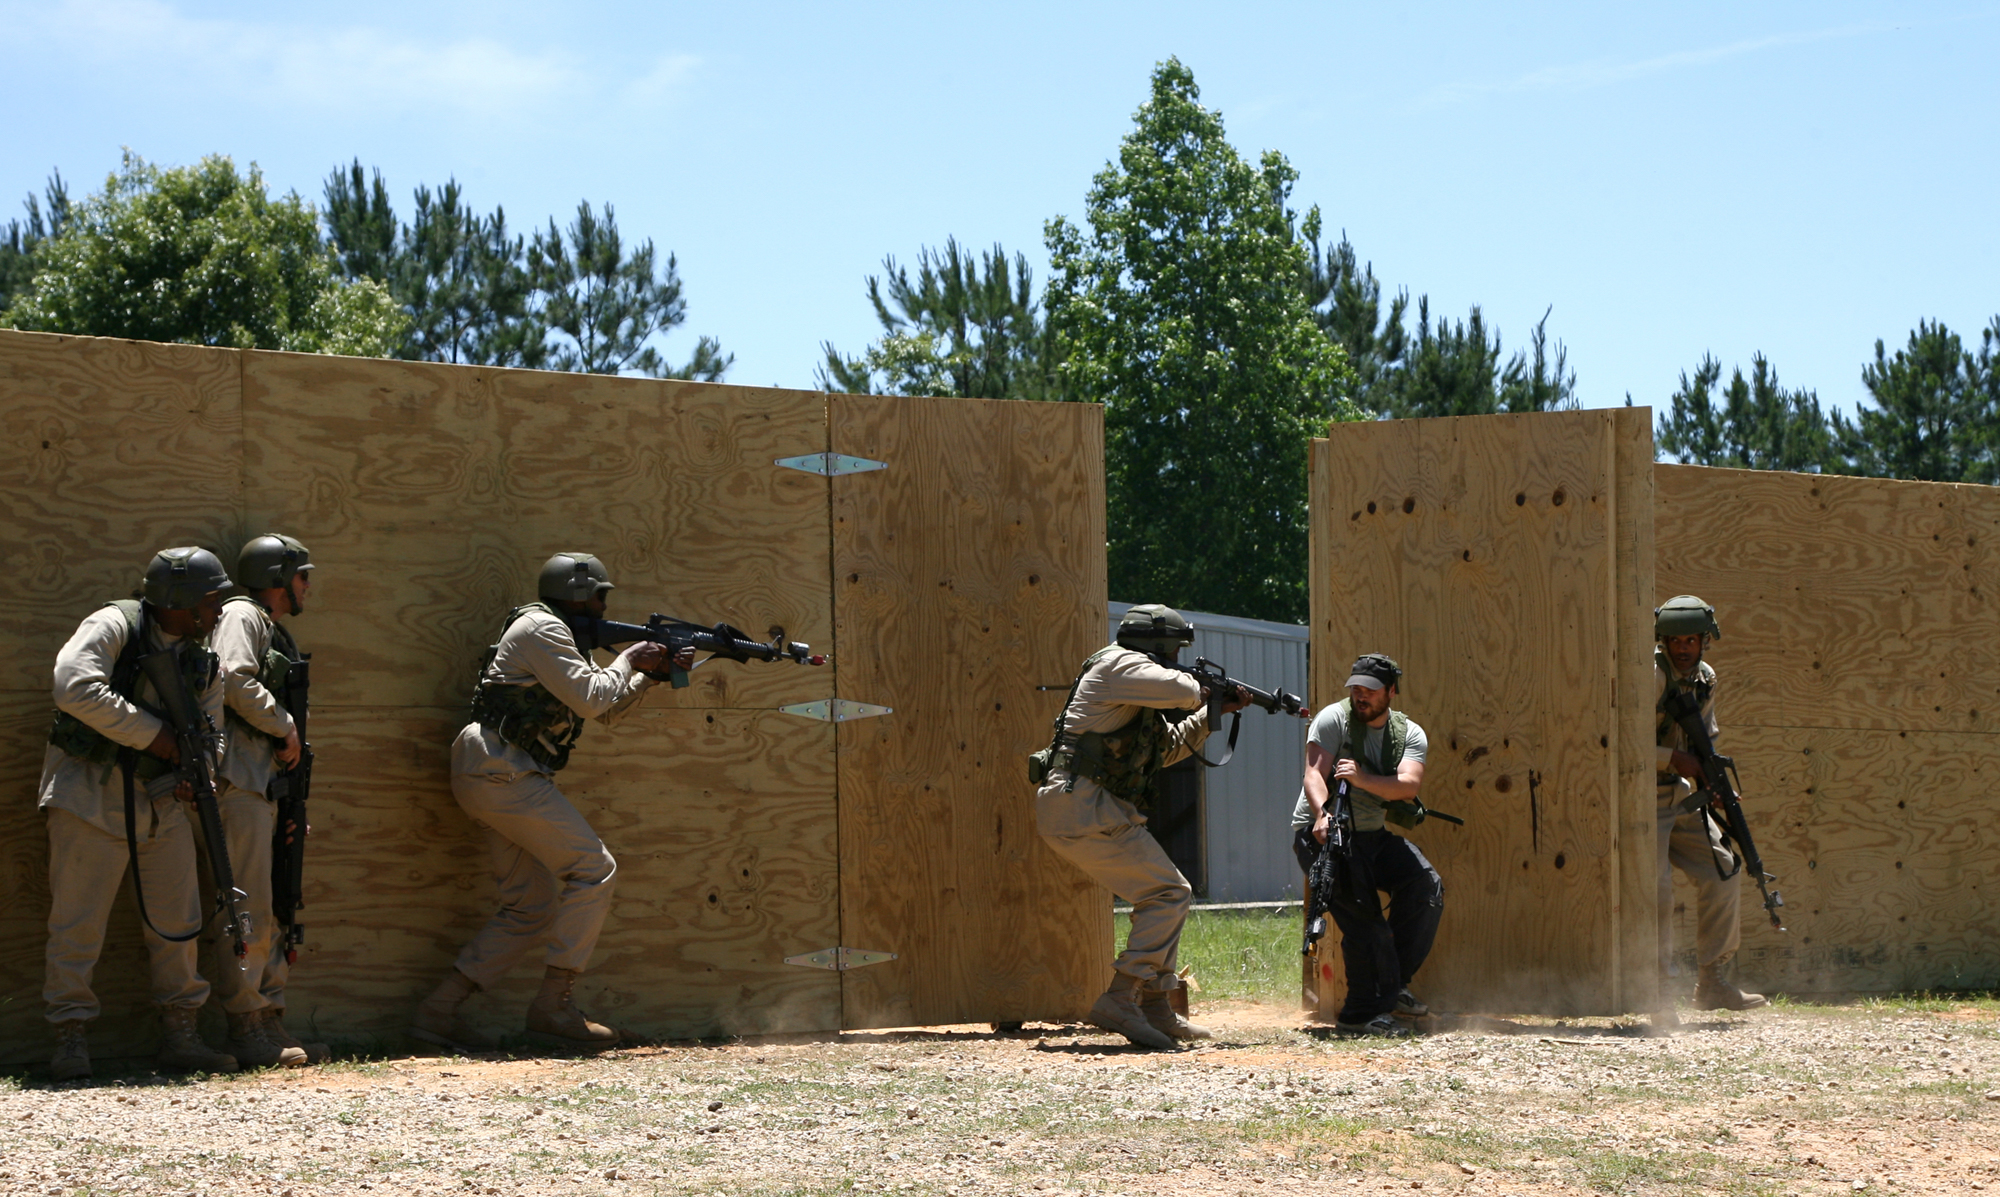 US-ARMY-TRAINING-JRTC-39.jpg